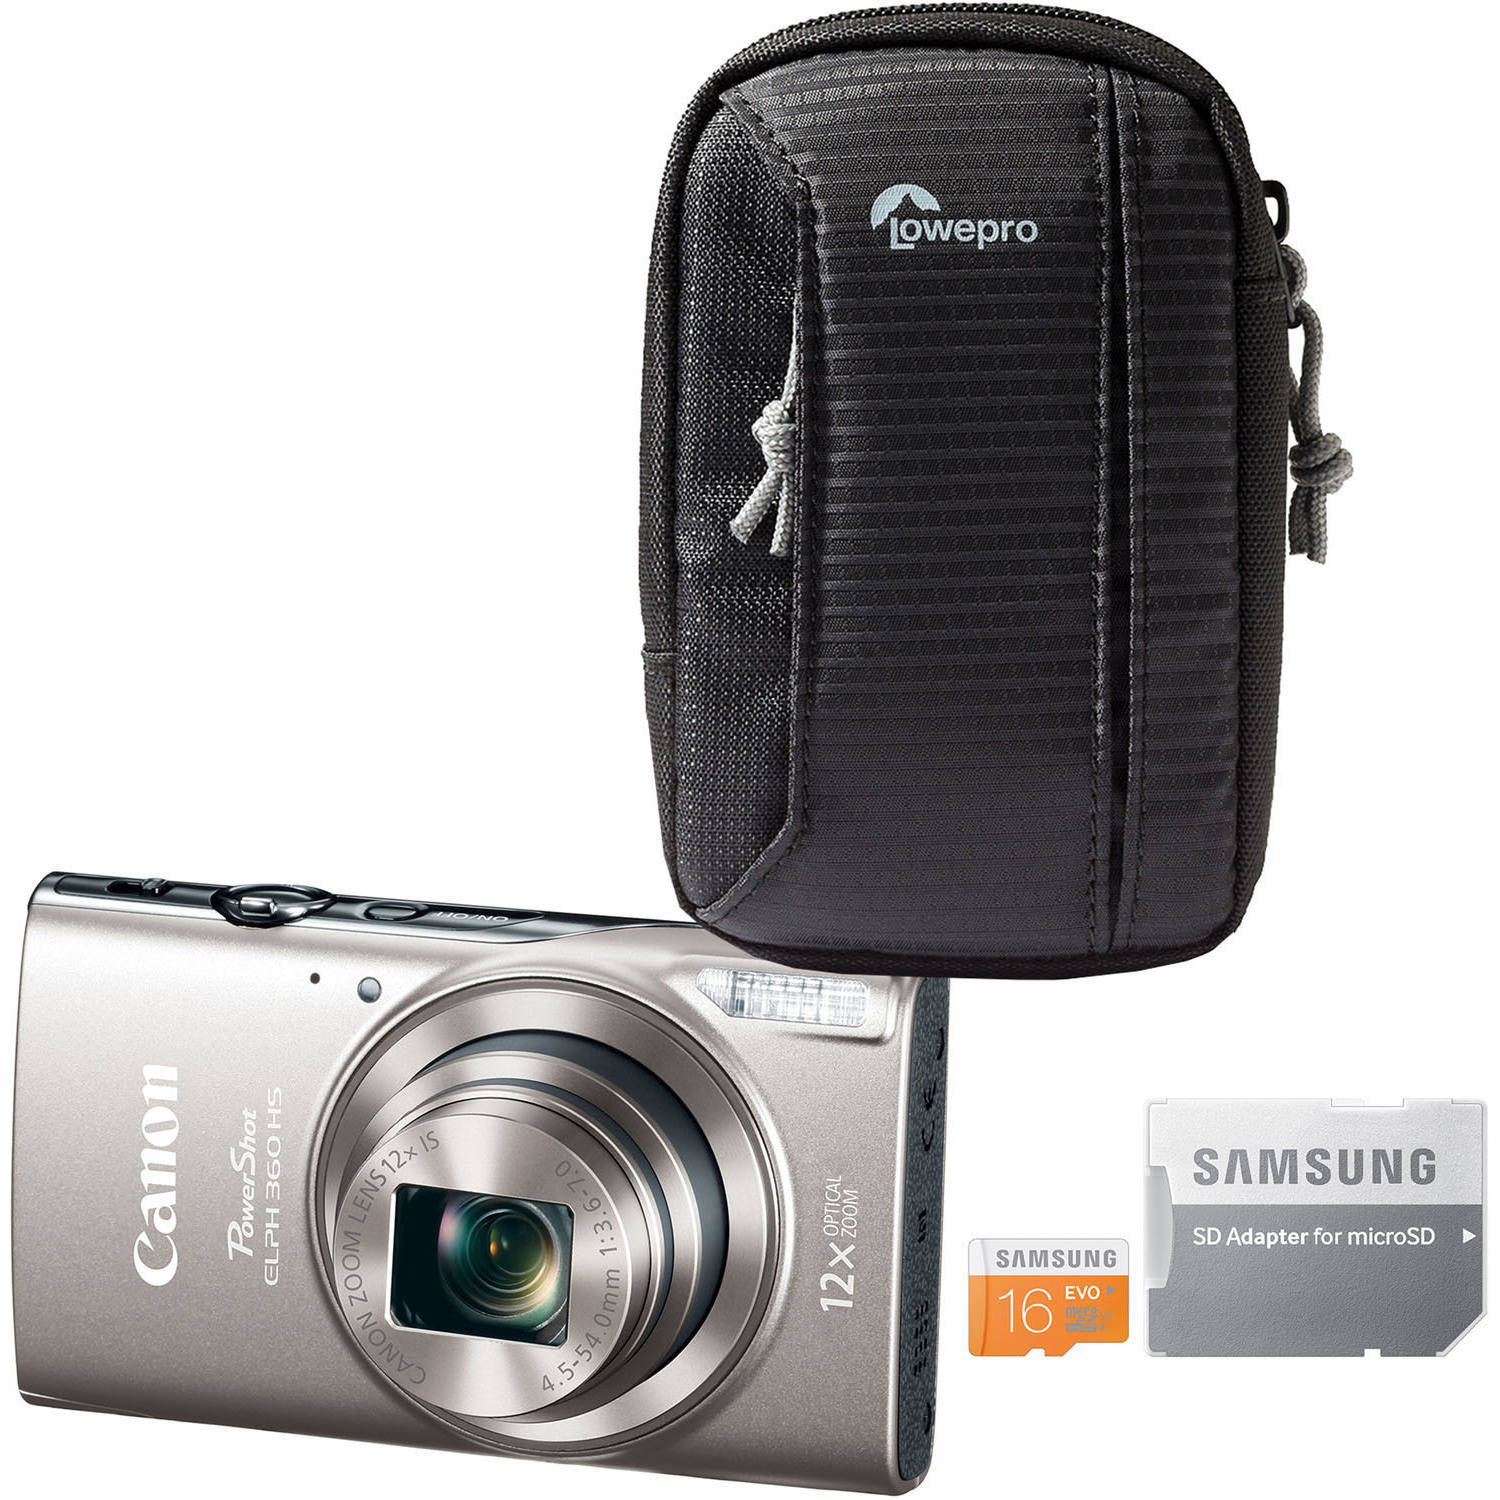 Canon PowerShot ELPH 360 HS Digital Camera Bundle with 20.2 Megapixels, 12x Optical Zoom, Tahoe 25 II Camera Pouch and 16GB microSD Card